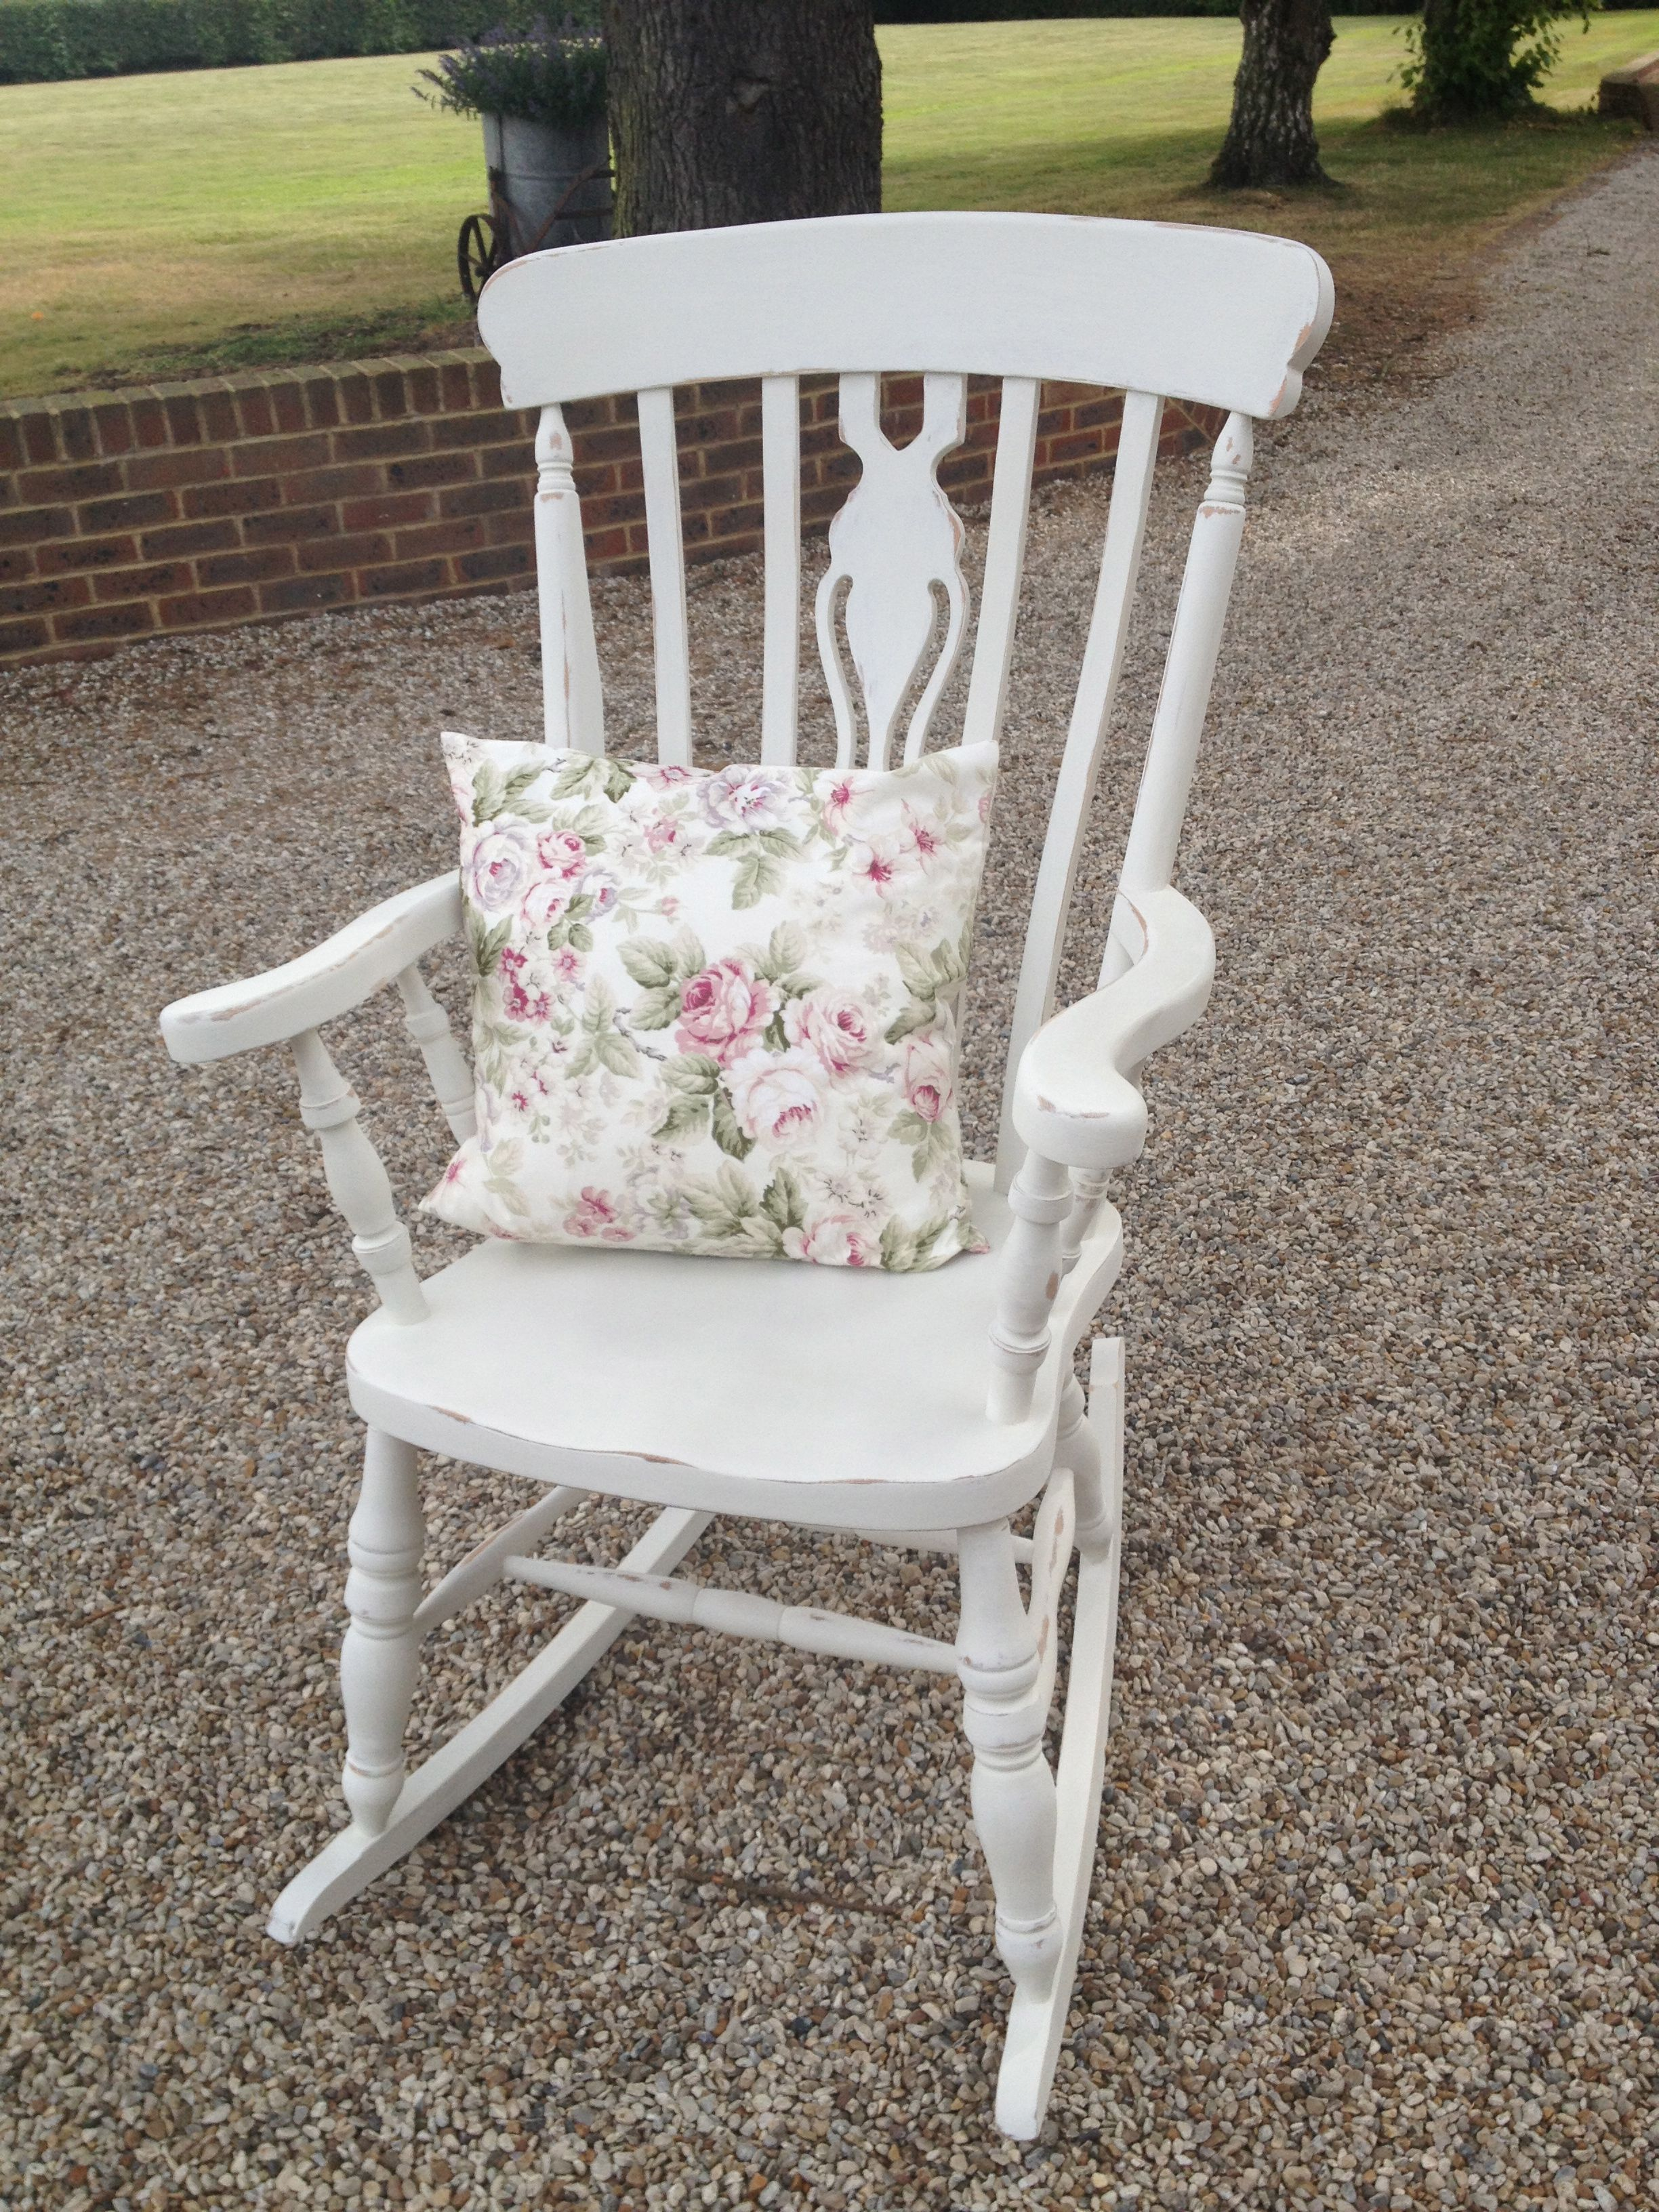 Shabby Chic rocking chair painted in Old White Shabby